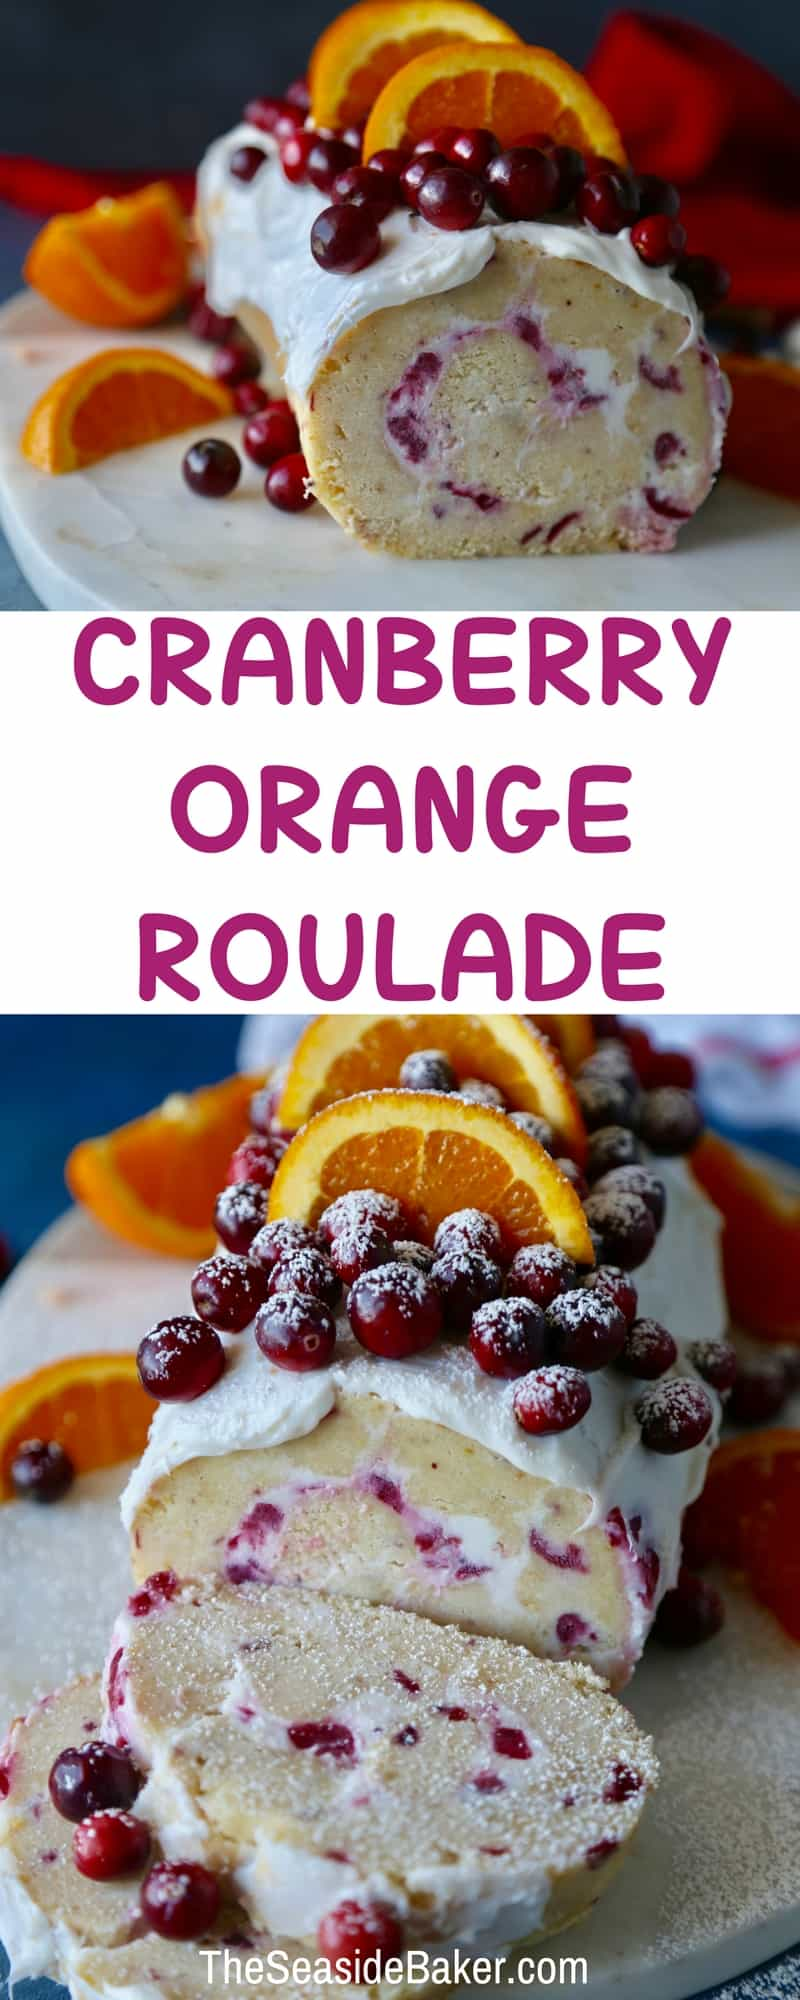 Cranberry Orange Roulade